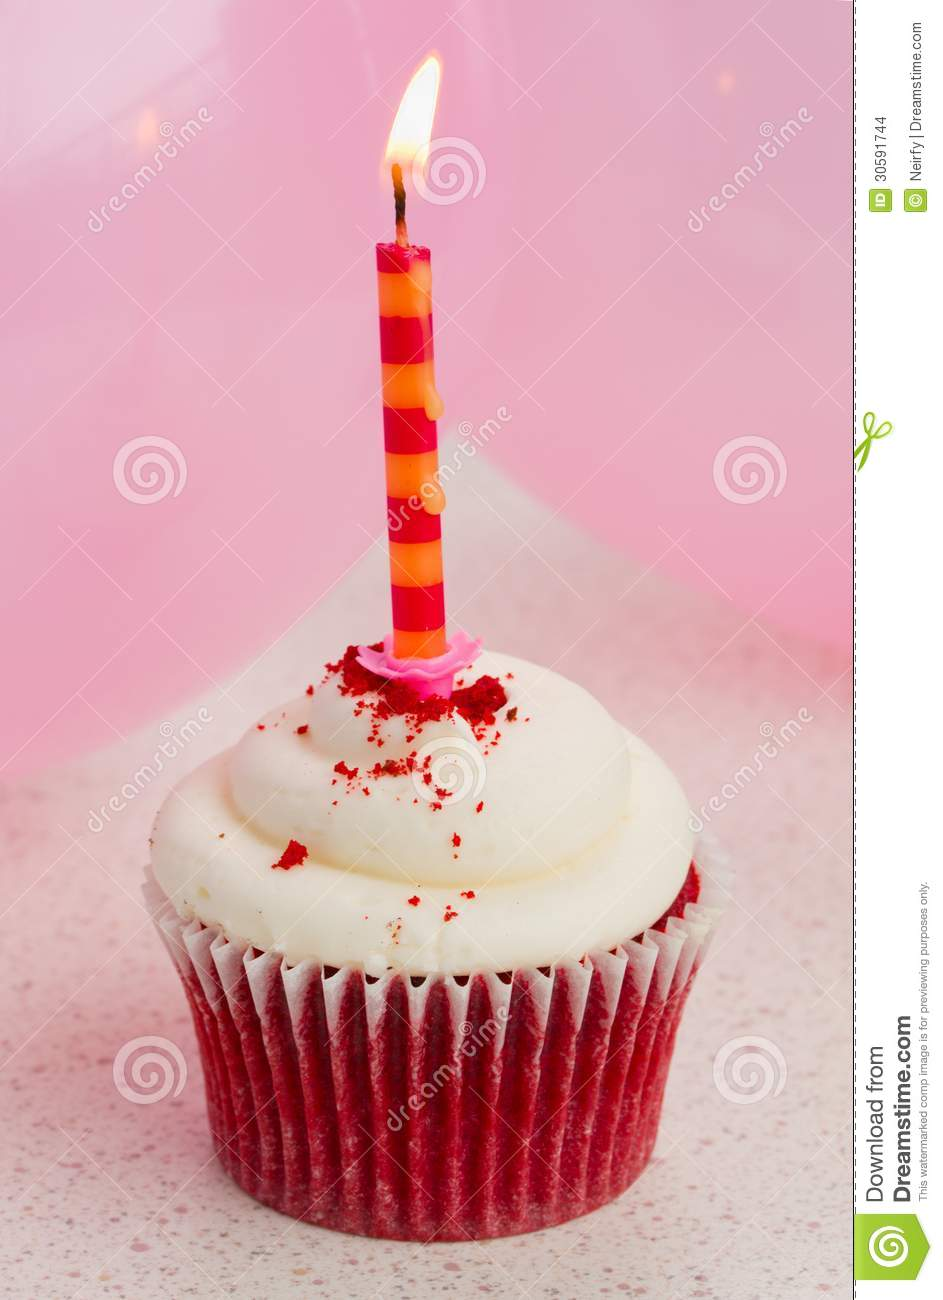 Image Of Birthday Cake With One Candle : One Birthday Cake Stock Images - Image: 30591744